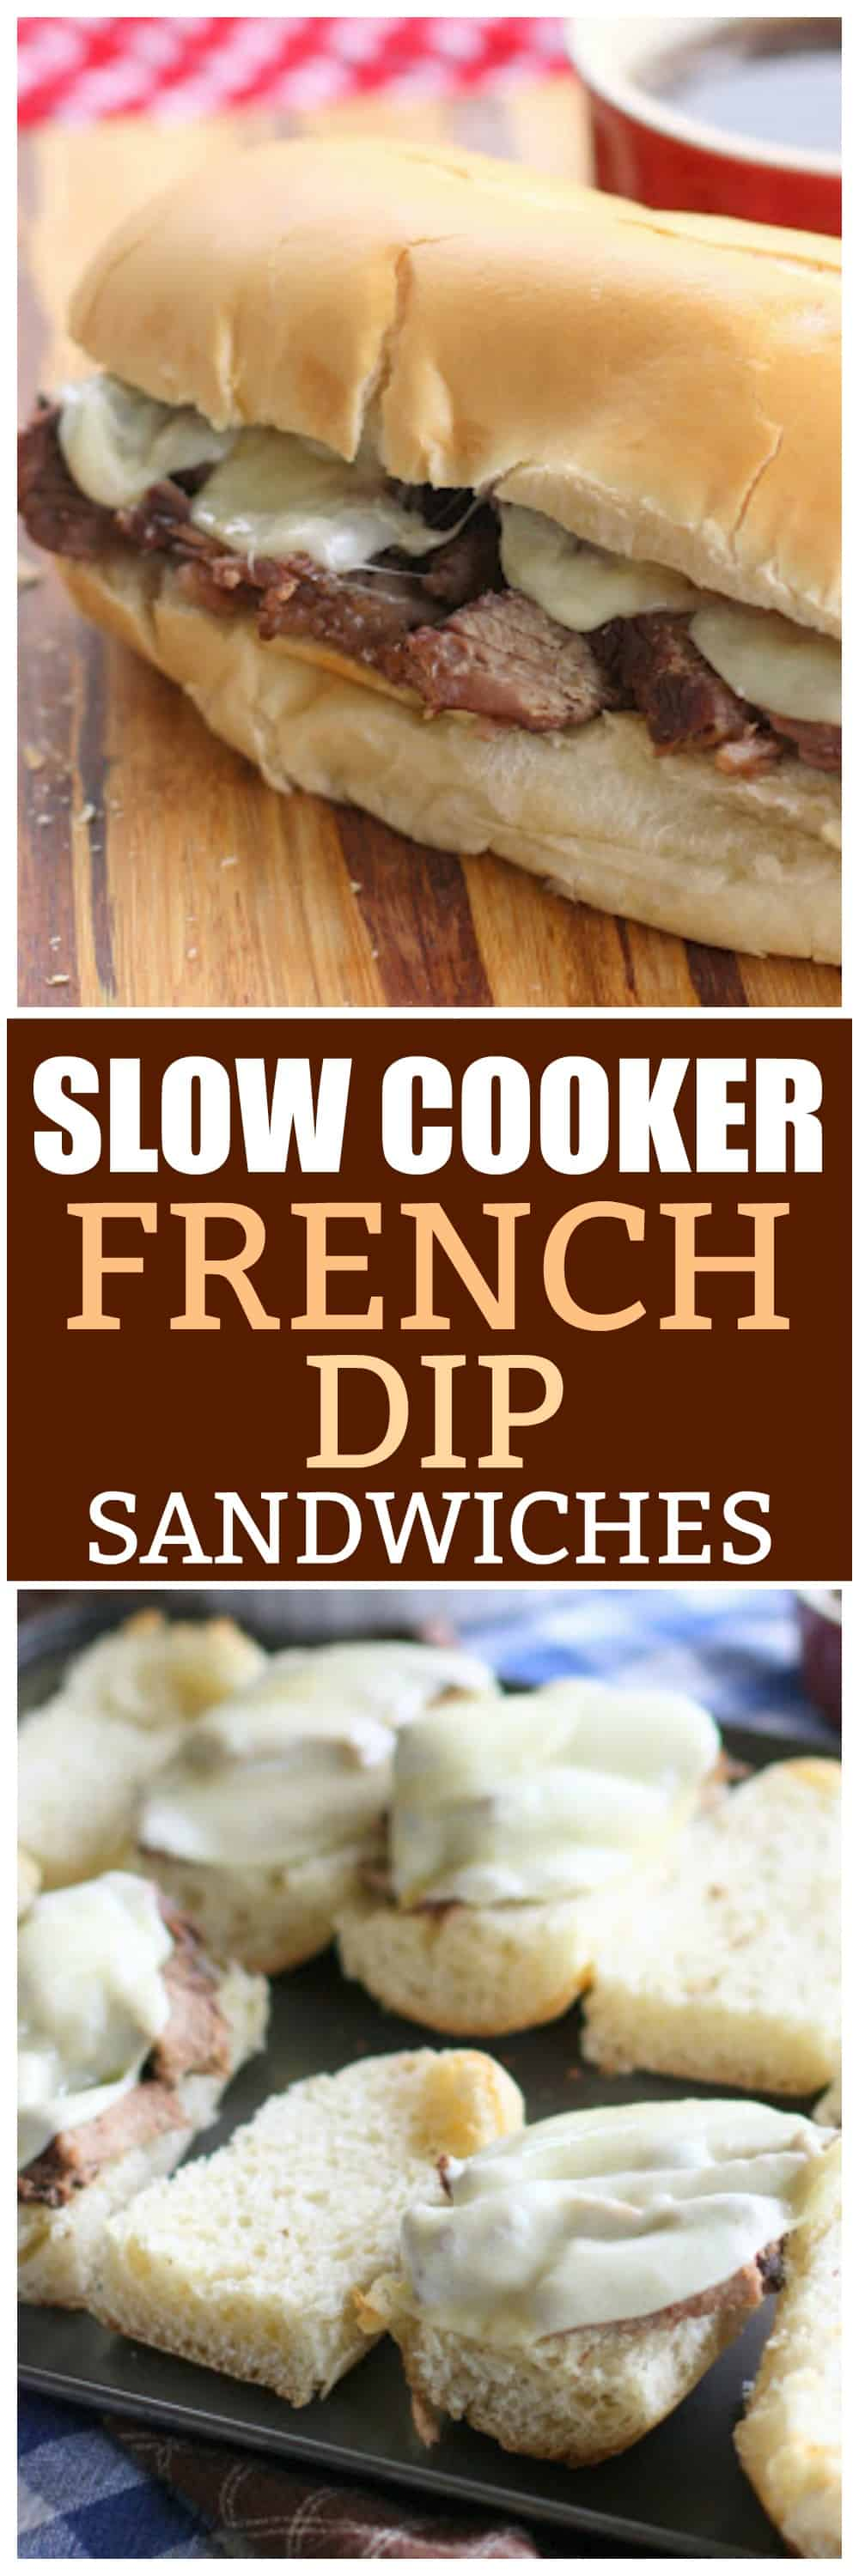 Slow Cooker French Dip Sandwiches with a seasoned au jus sauce. An easy crockpot recipe! the-girl-who-ate-everything.com